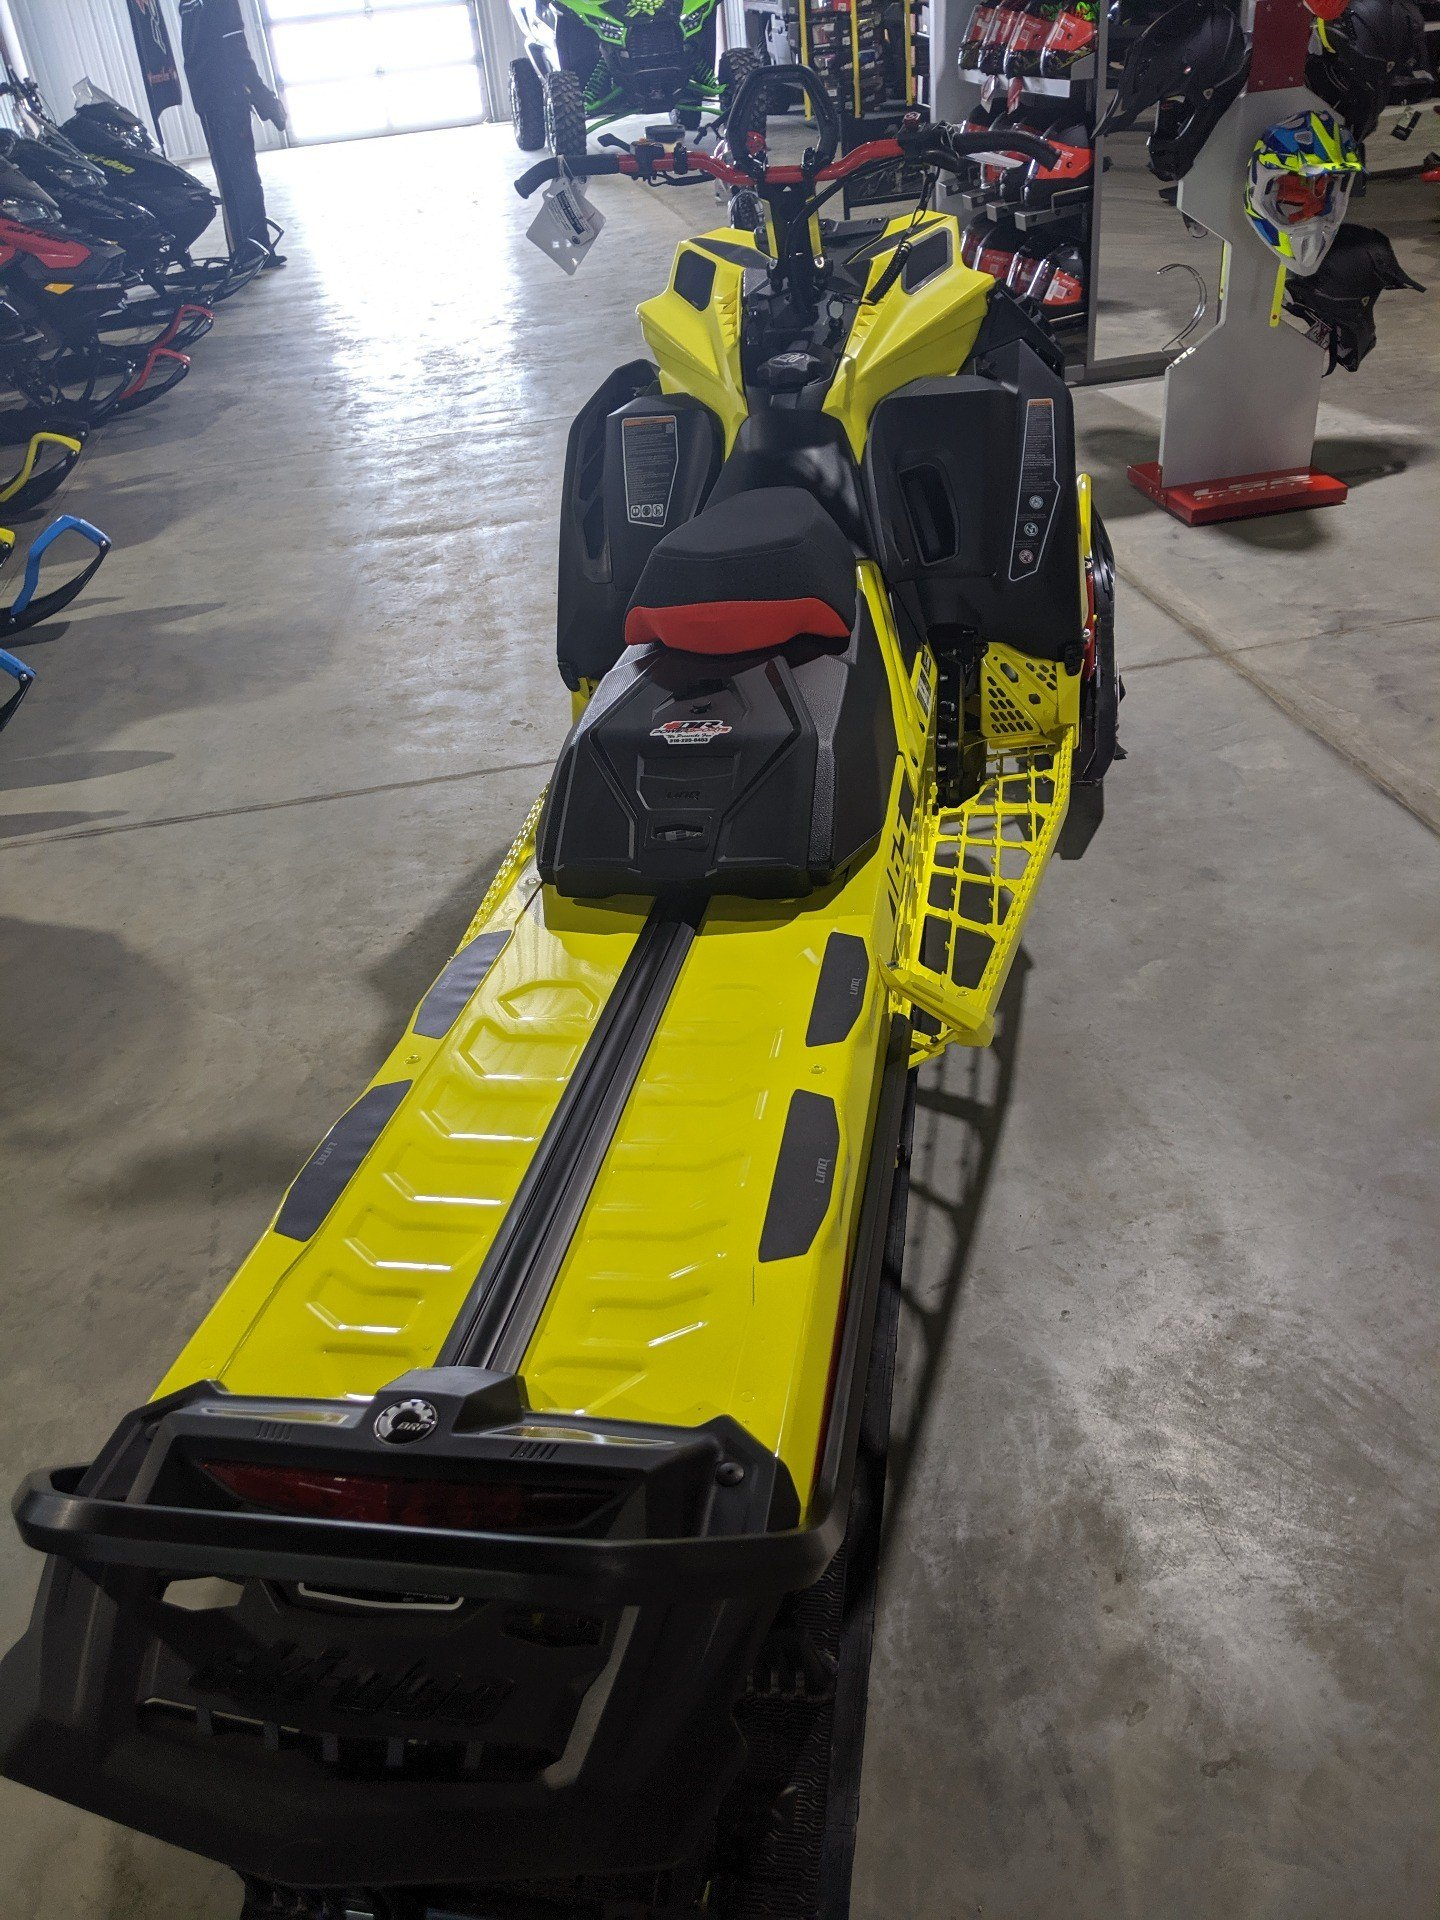 2020 Ski-Doo Summit 165 850 E-TEC Turbo SHOT in Cedar Falls, Iowa - Photo 6